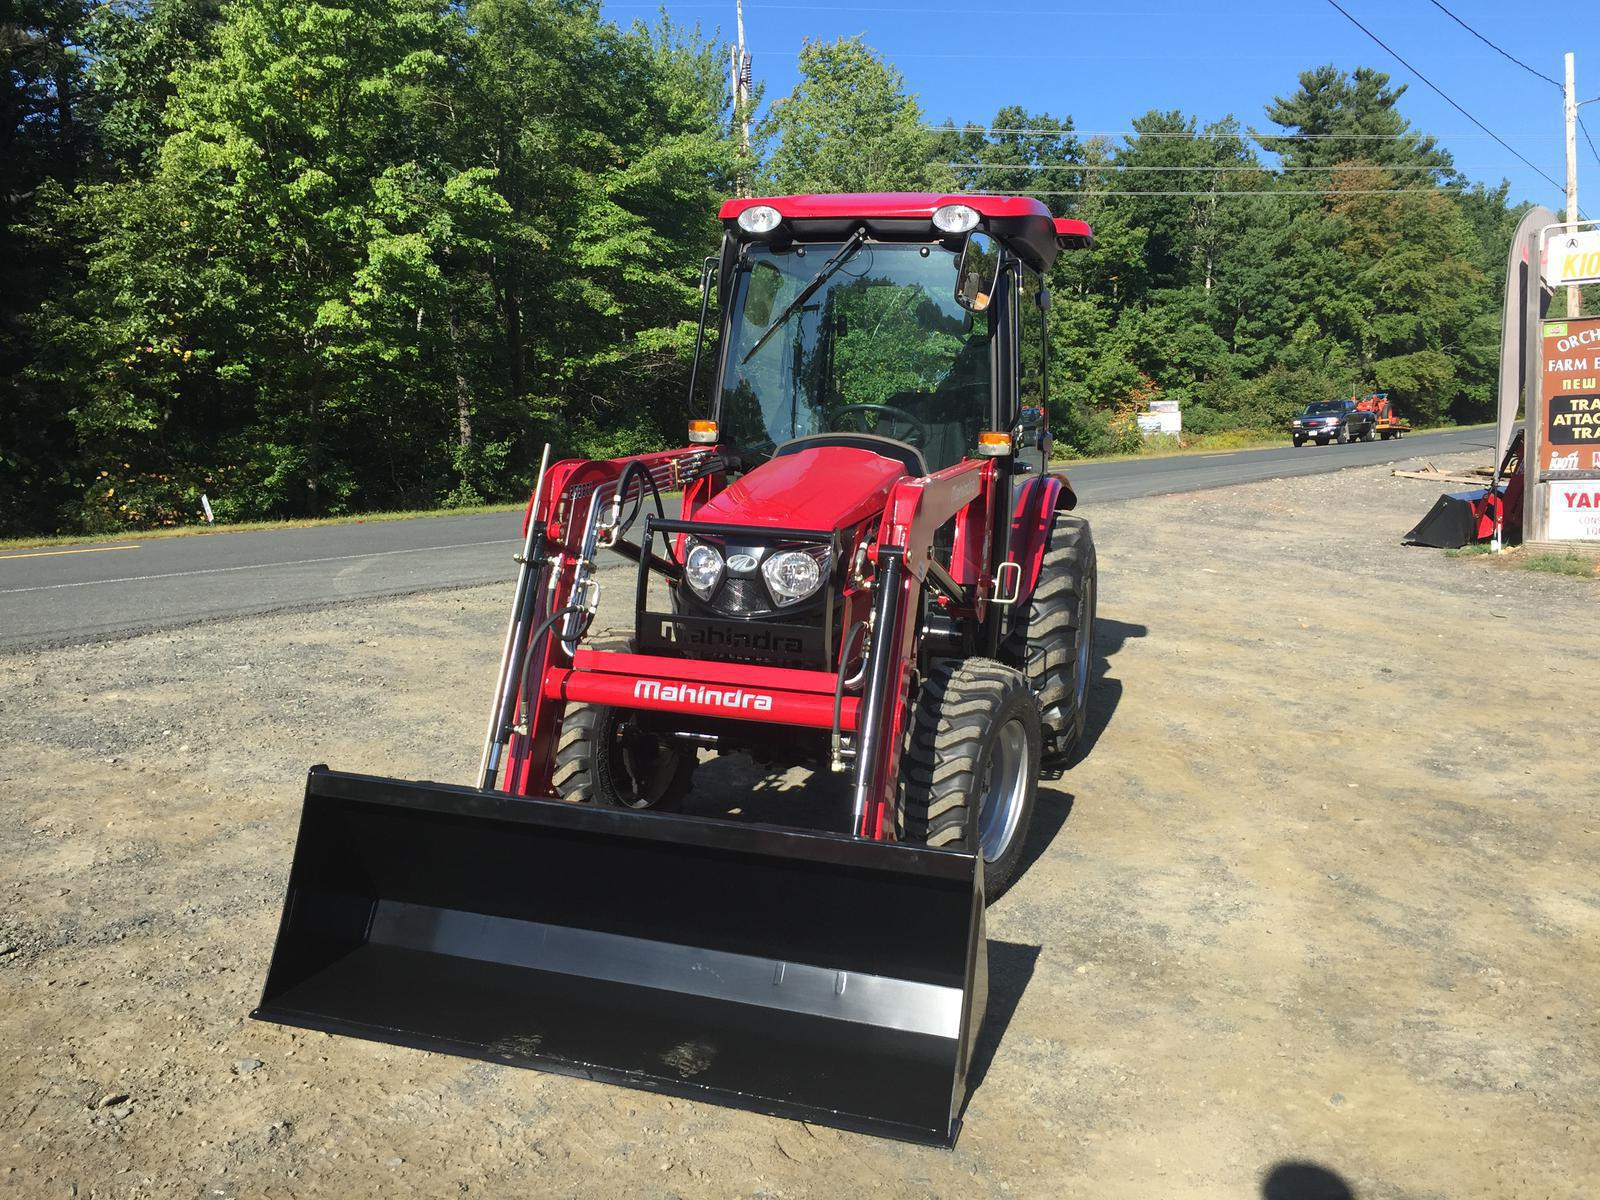 Mahindra 2638 Tractor Loader Cab 4x4 for sale in Belchertown